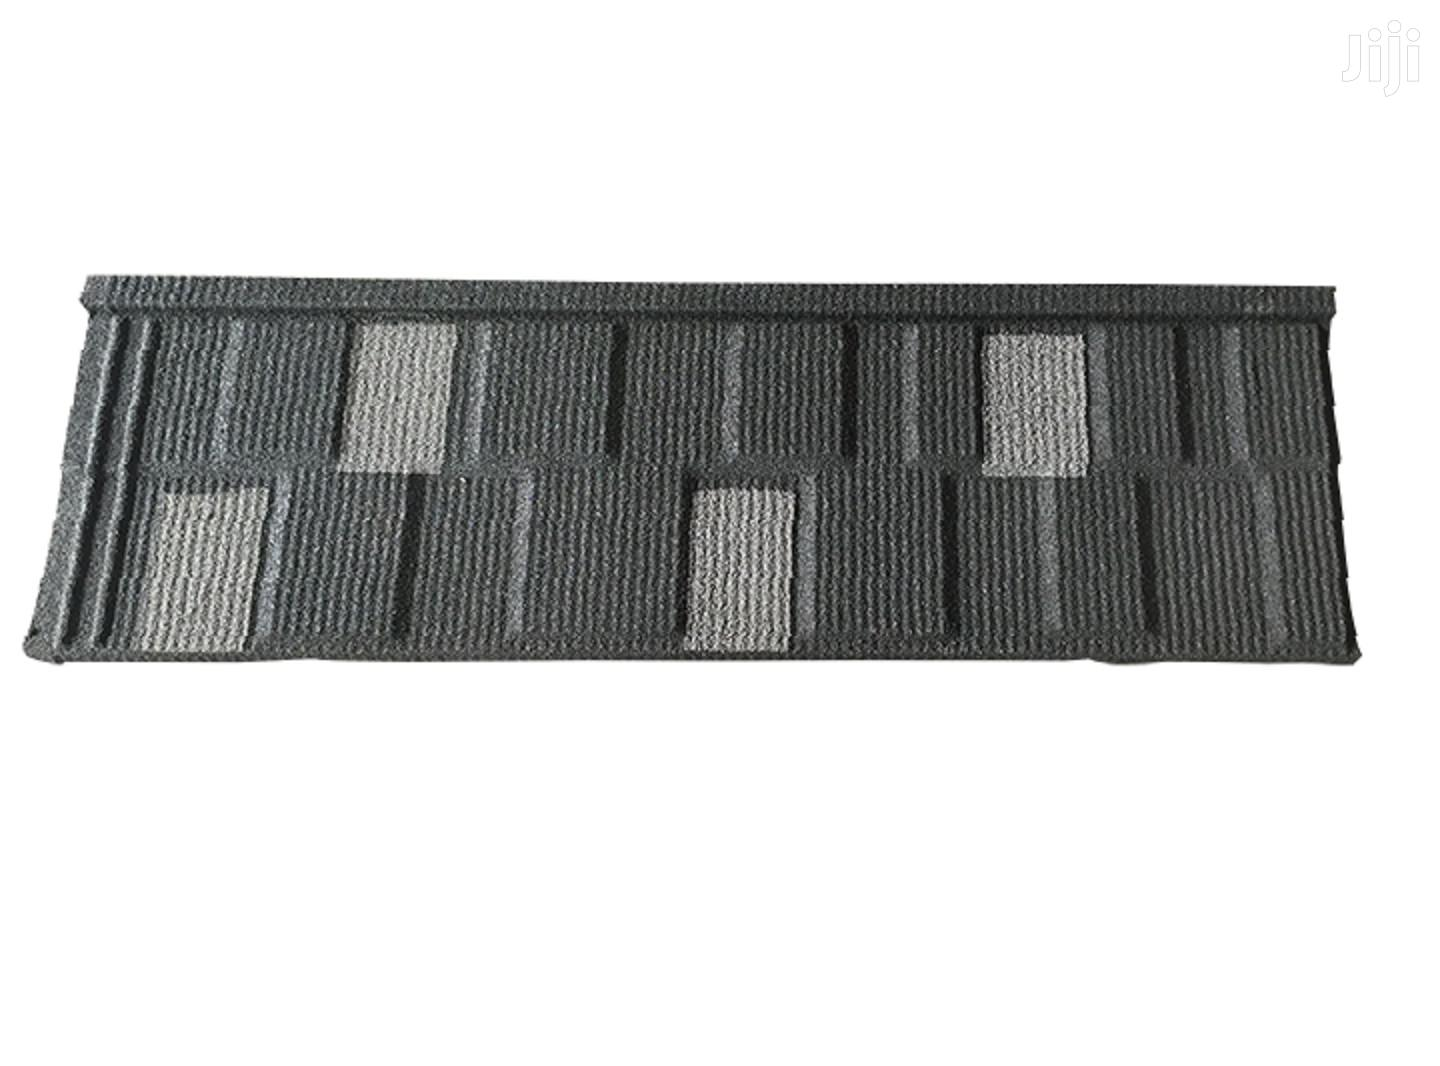 Black And White Shingle And Classic Stone Coated Roof Tiles